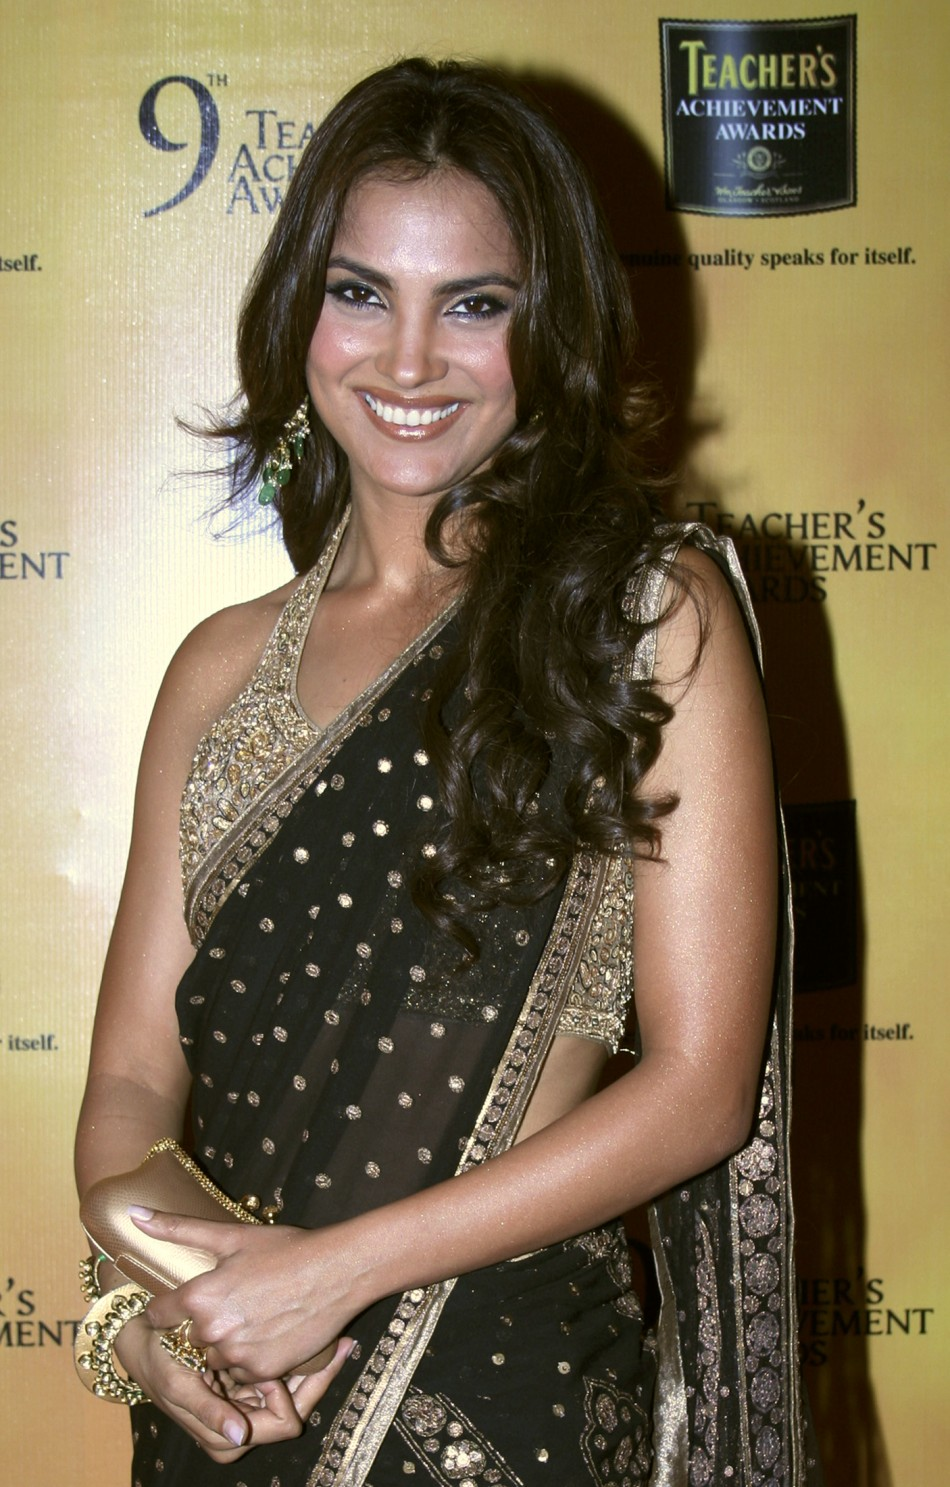 Bollywood actress Lara Dutta poses for a picture during the Teacher's Achievement Awards ceremony in Mumbai Nov. 7, 2009. REUTERS/Manav Manglani